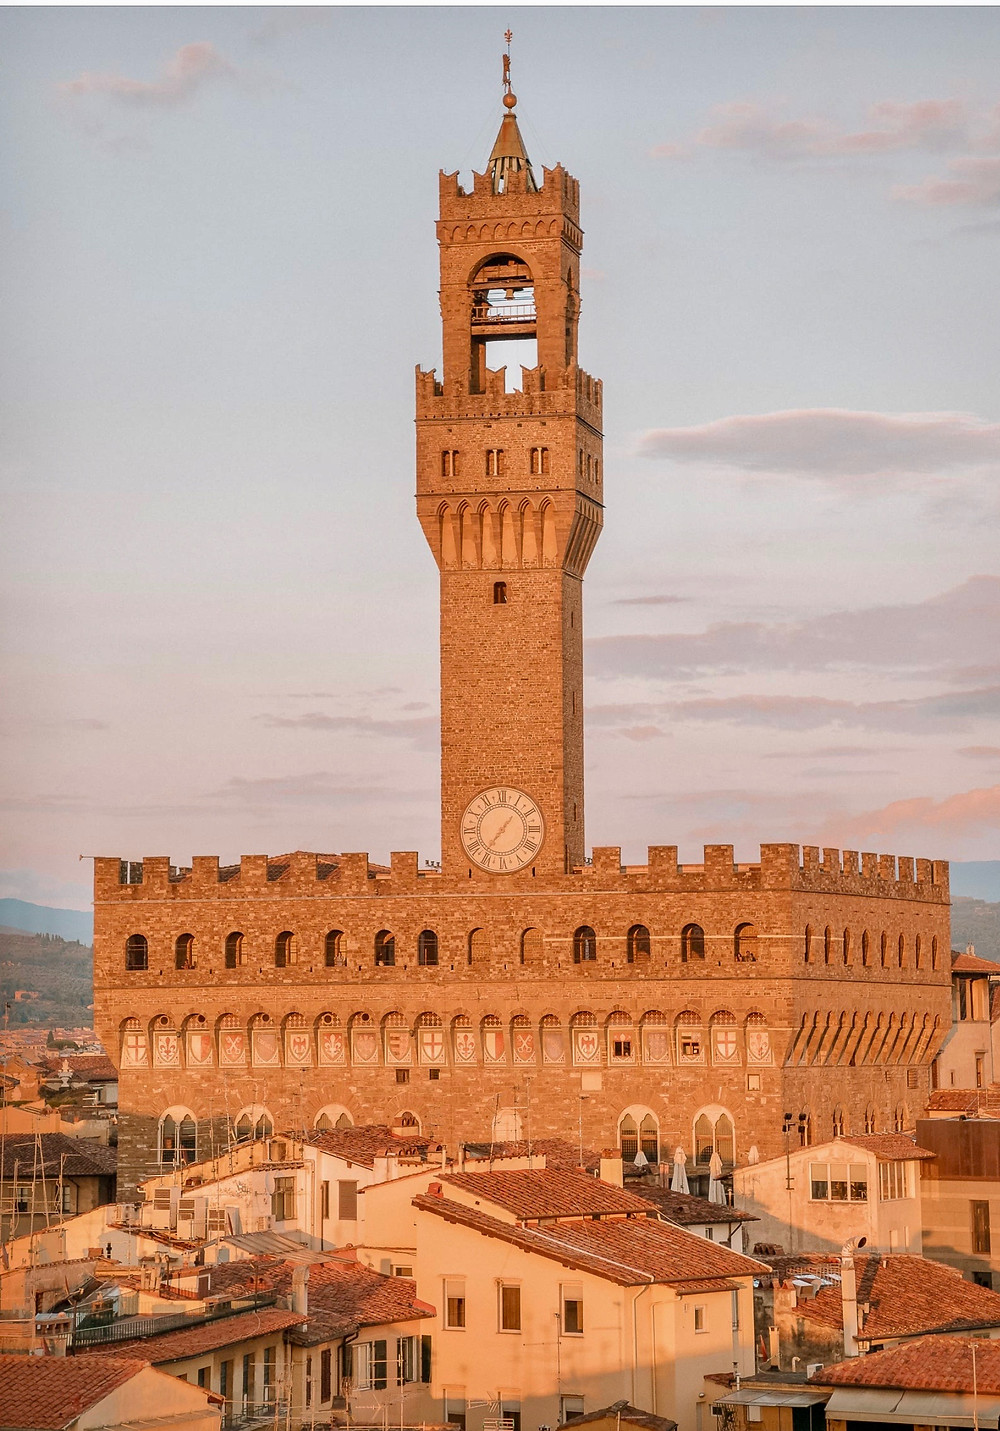 the Palazzo Vecchio and the Tower of Arnolfo